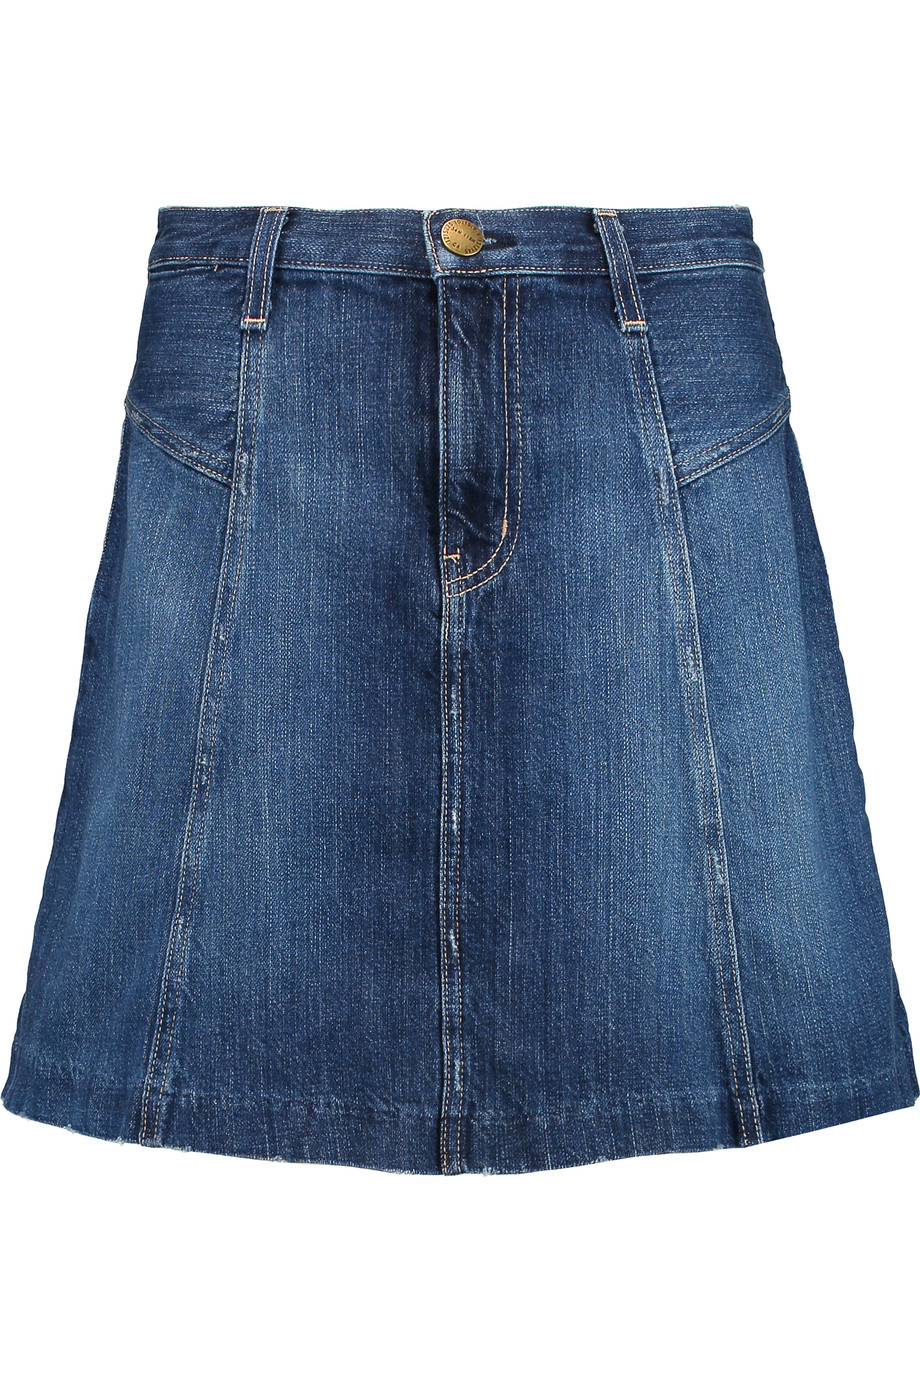 The Skater Denim Mini Skirt Dark Denim - length: mid thigh; pattern: plain; fit: loose/voluminous; waist: high rise; predominant colour: denim; occasions: casual, creative work; style: a-line; fibres: cotton - 100%; texture group: denim; pattern type: fabric; season: s/s 2016